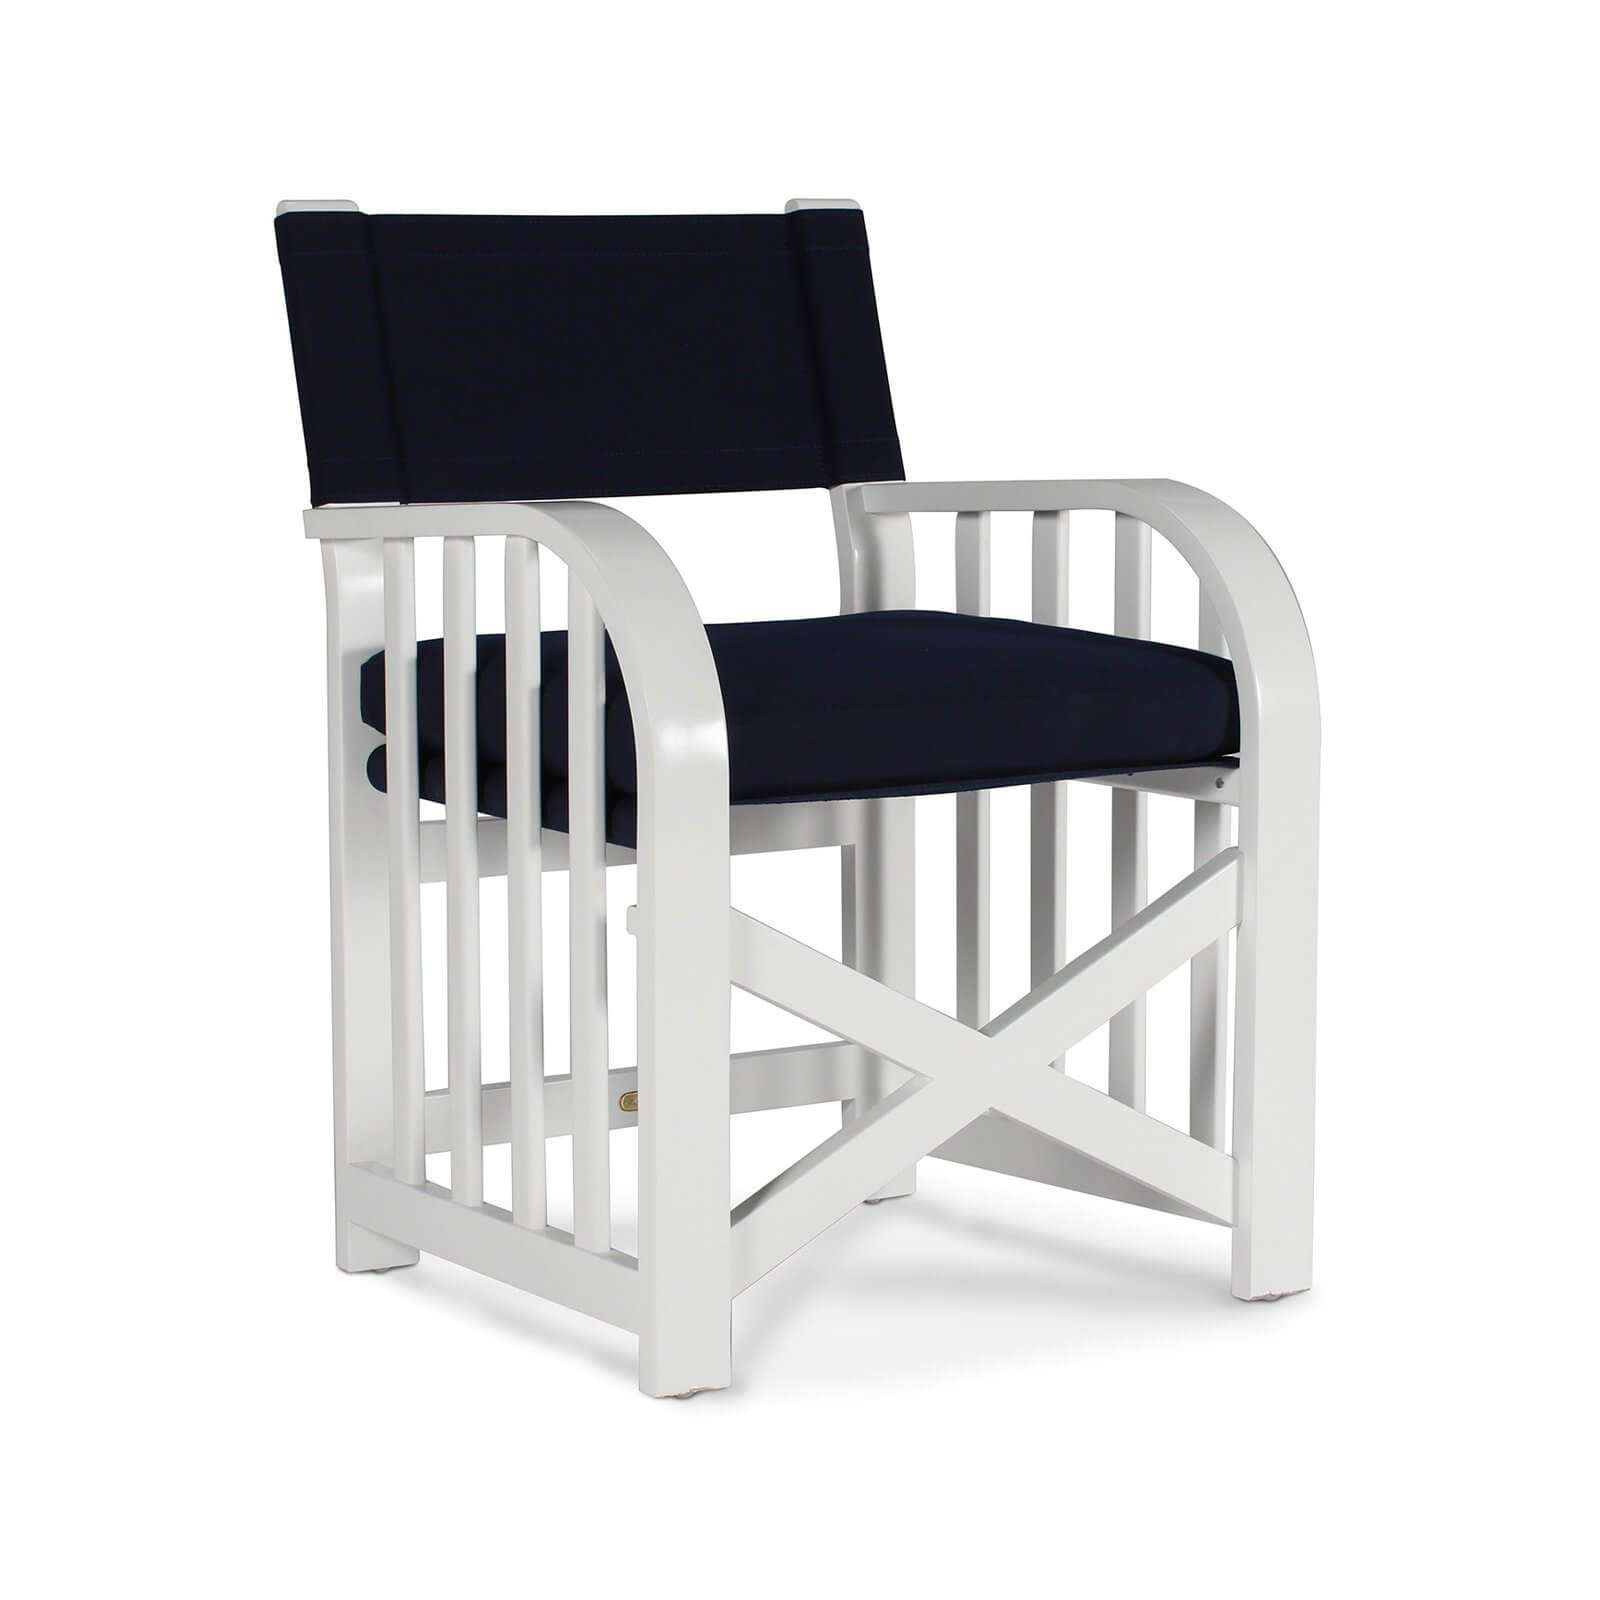 CLIPPER CHAIR 1 - STUART MEMBERY HOME COLLECTION